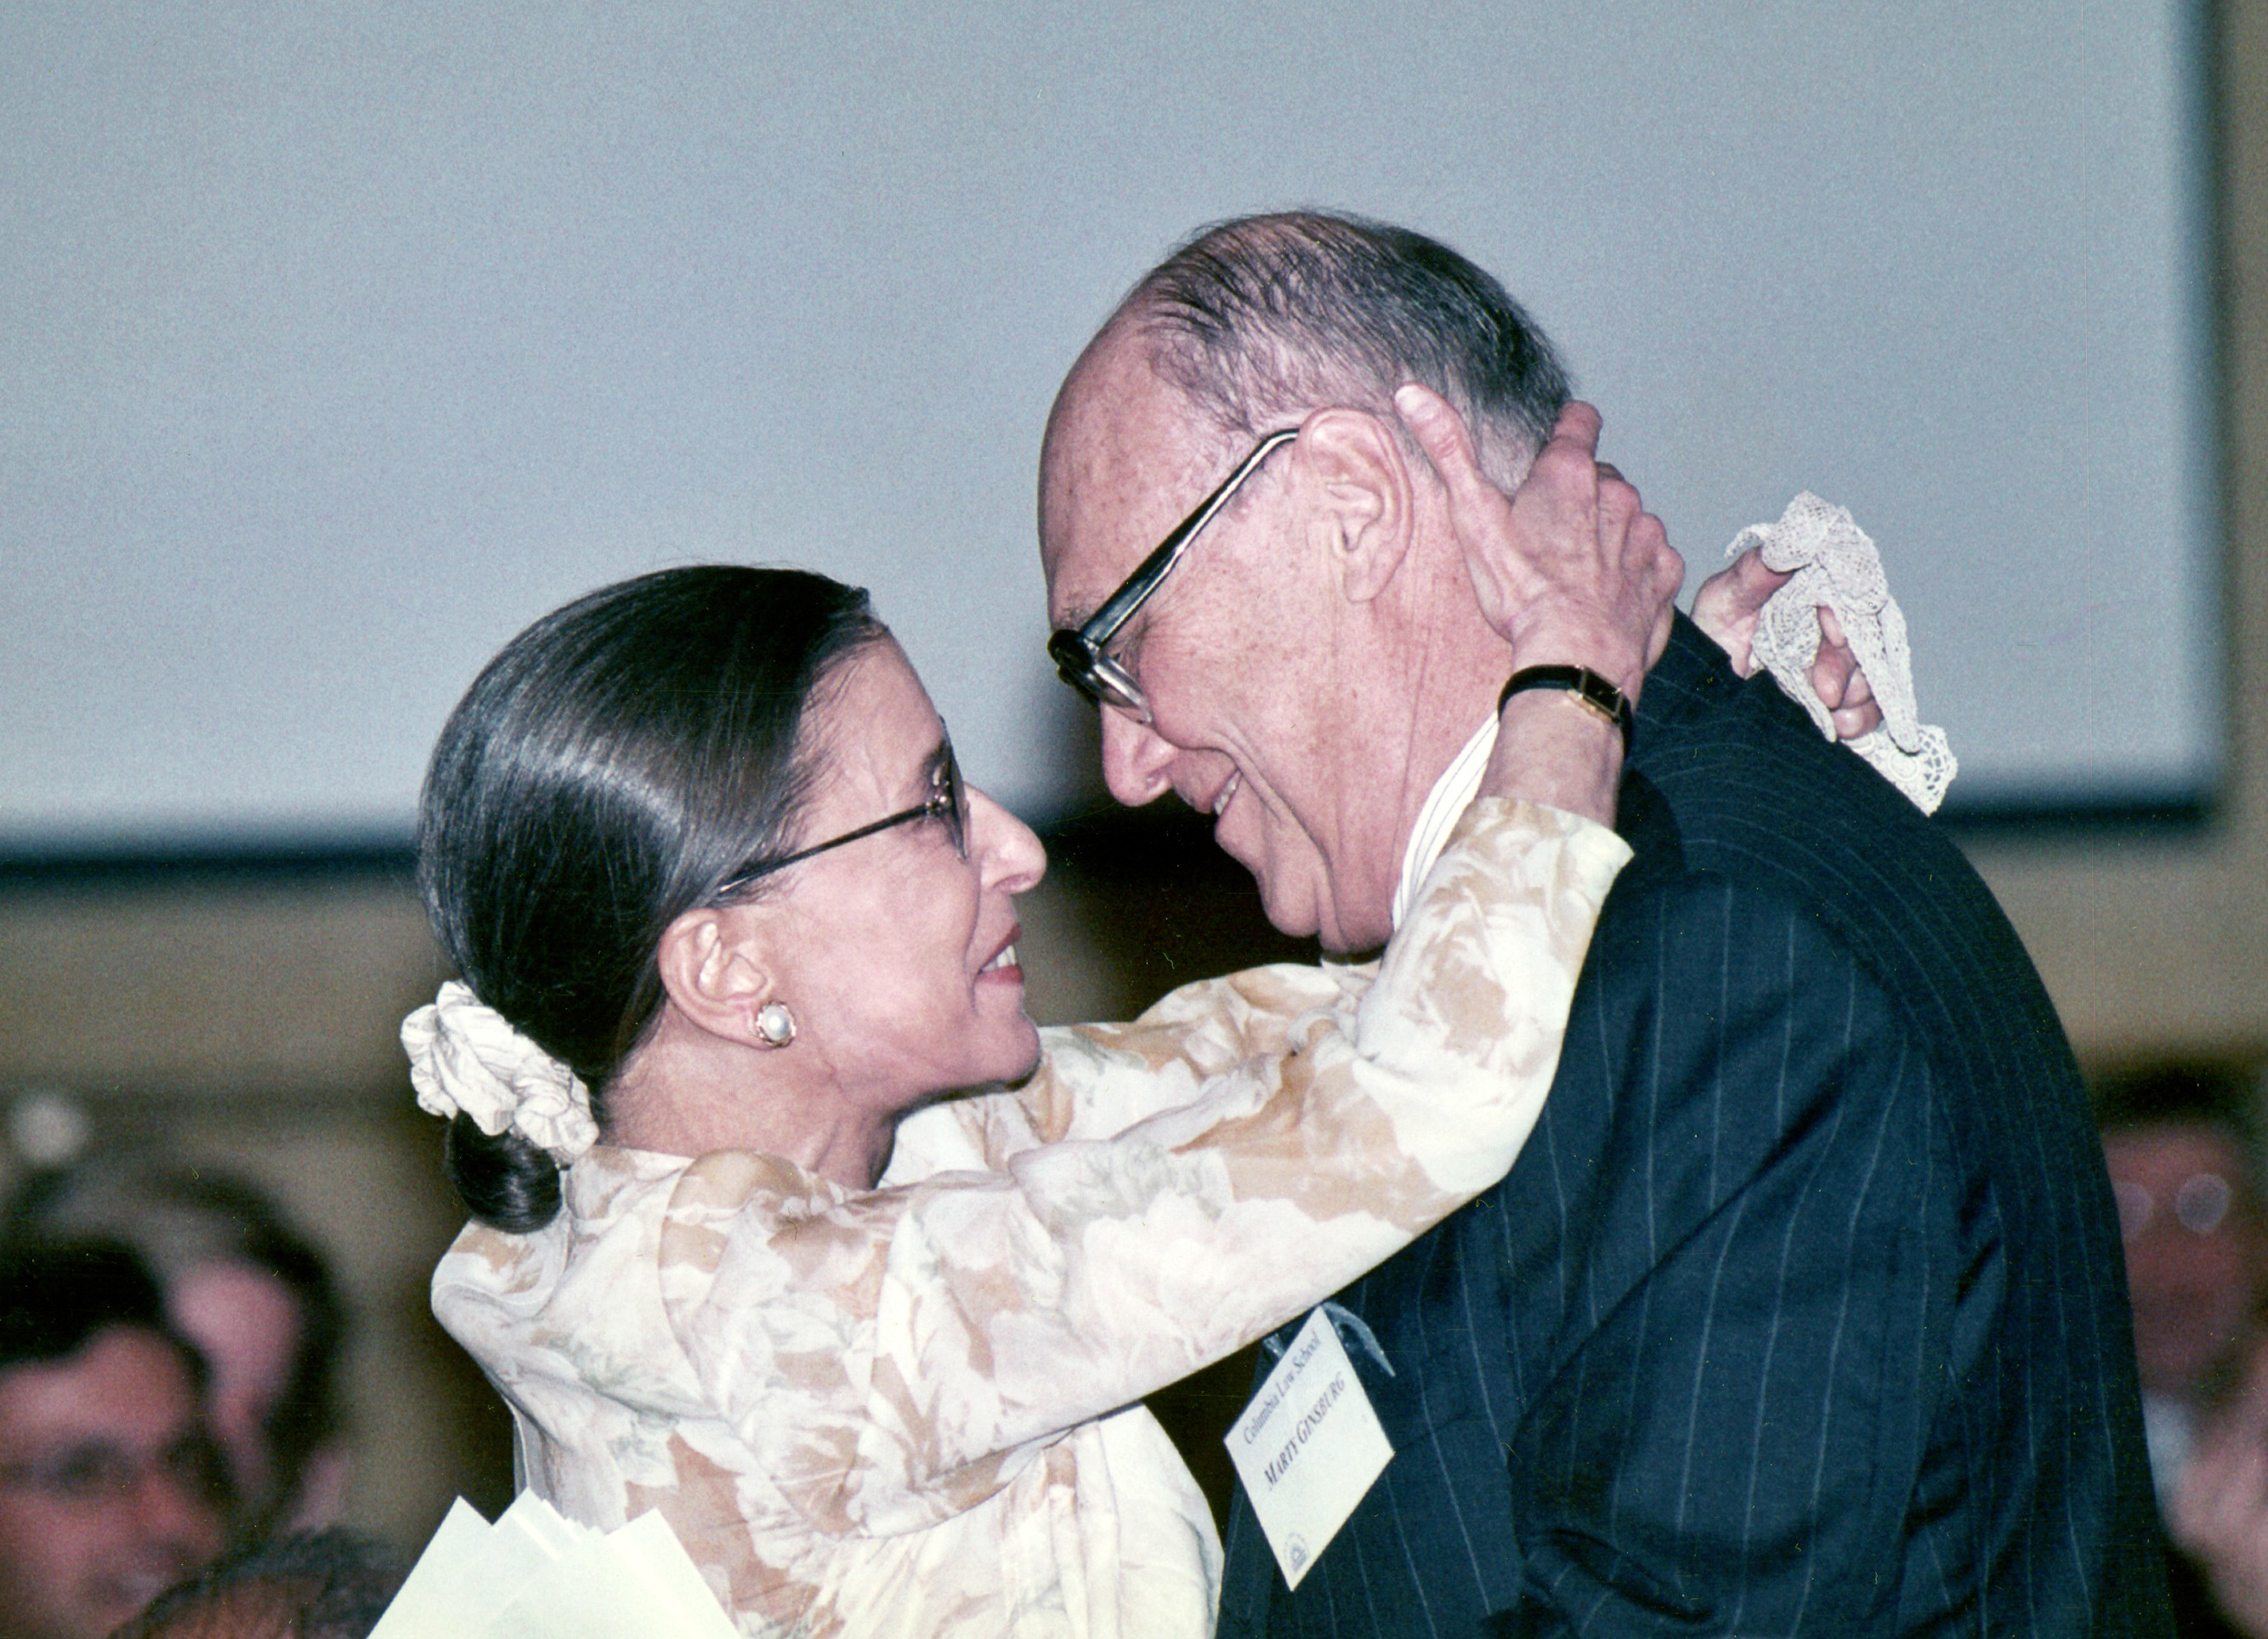 Justice Ginsburg and her husband, Marty, embrace while attending an event. Courtesy of Justice Ginsburg's Personal Collection/Simon & Schuster